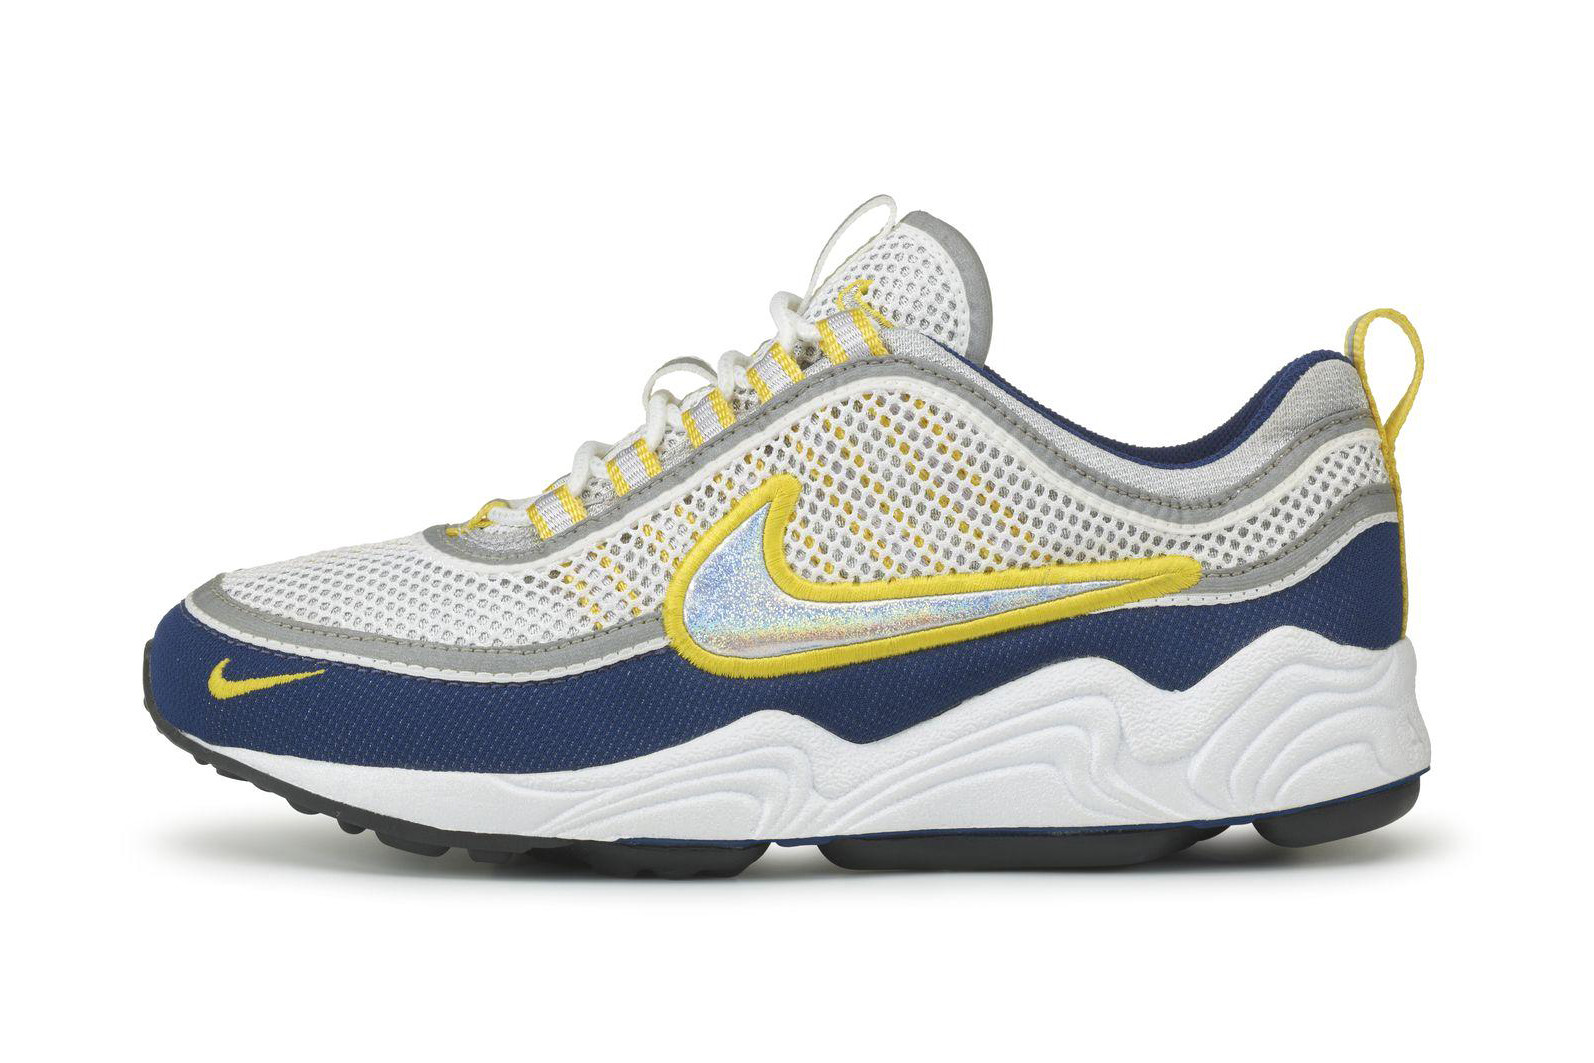 0a250476 A year later we saw the Nike Air Zoom Alpha that introduced four  anatomically-positioned pods into the Zoom Air sole unit, which stretched  the cushioning ...